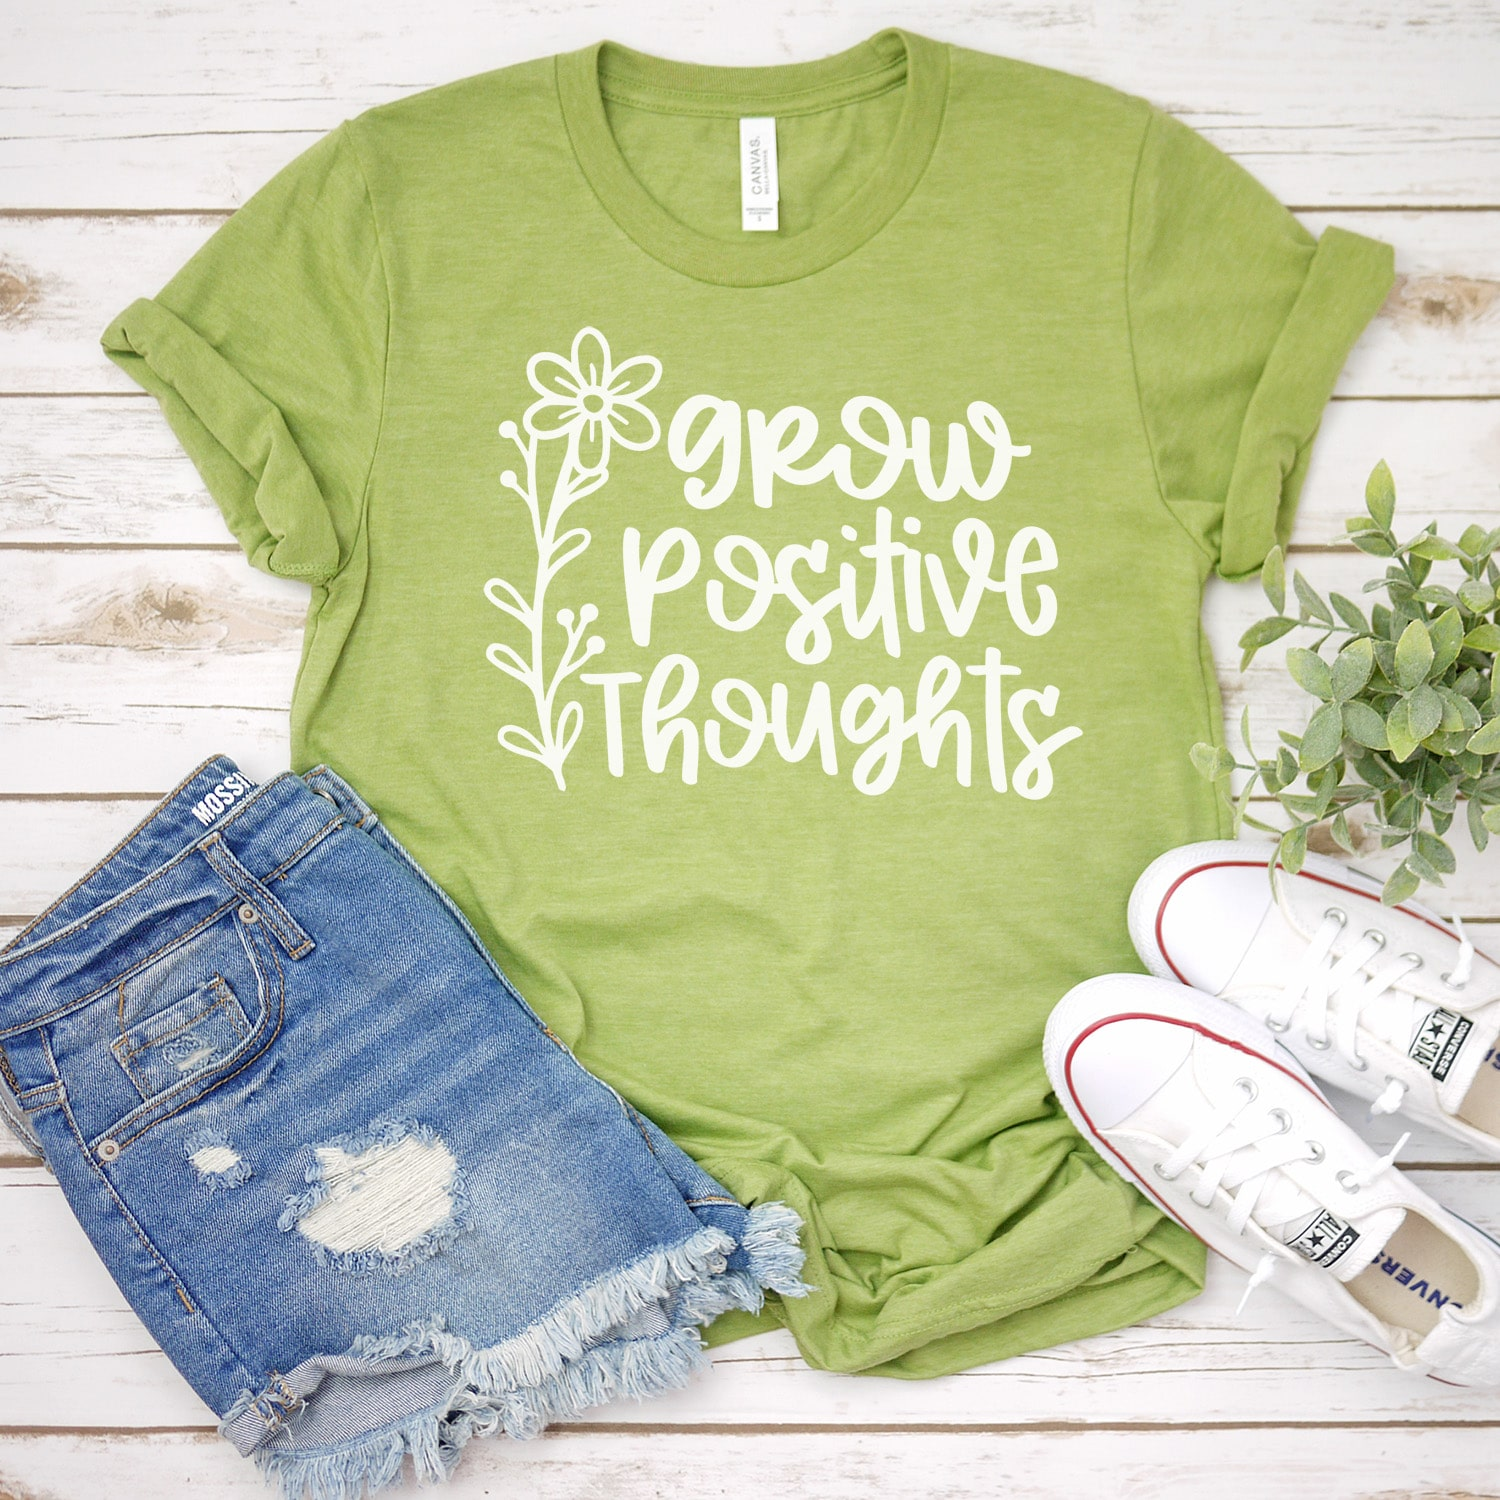 Green t-shirt featuring grow positive thoughts message across front, with white shoes and blue jean shorts